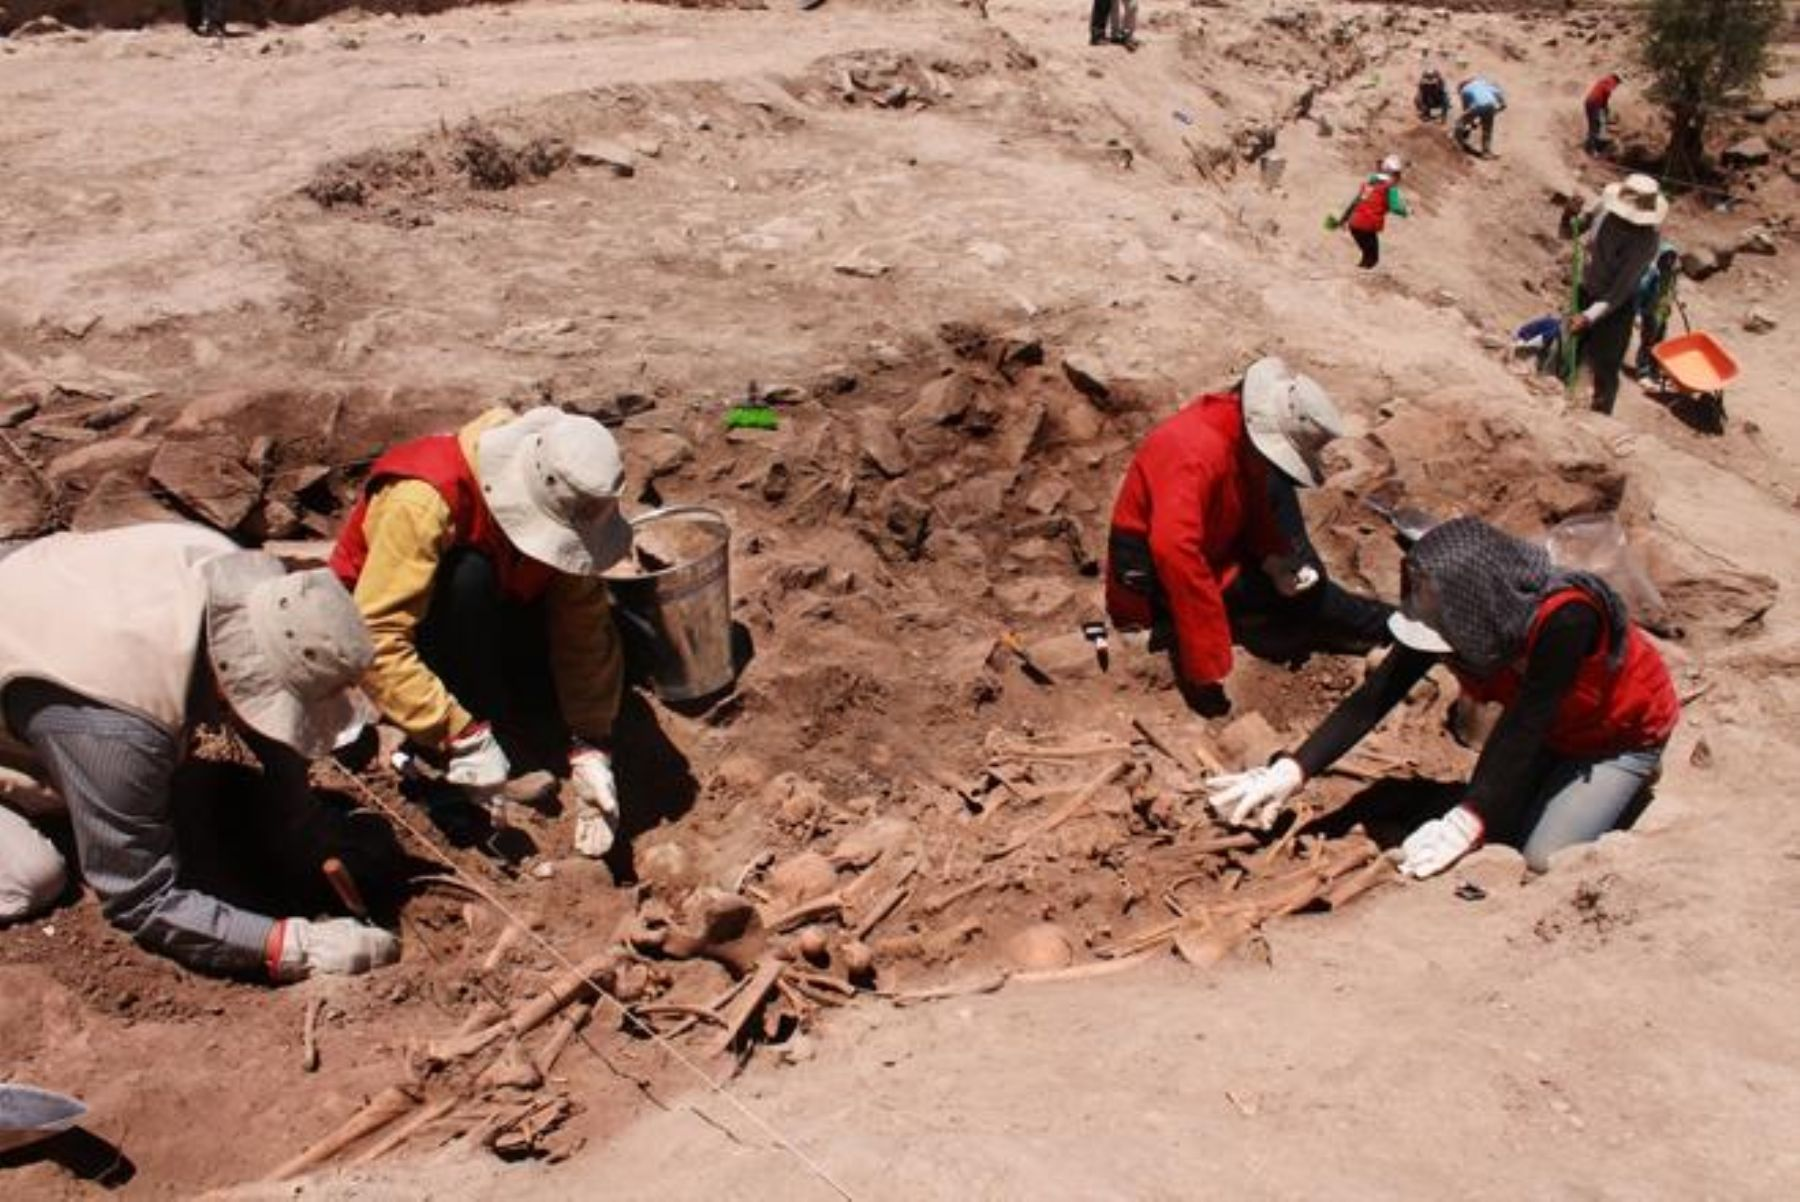 Ancient Sican Cemetery Discovered in Peru with 1000-Year-Old Skeletons